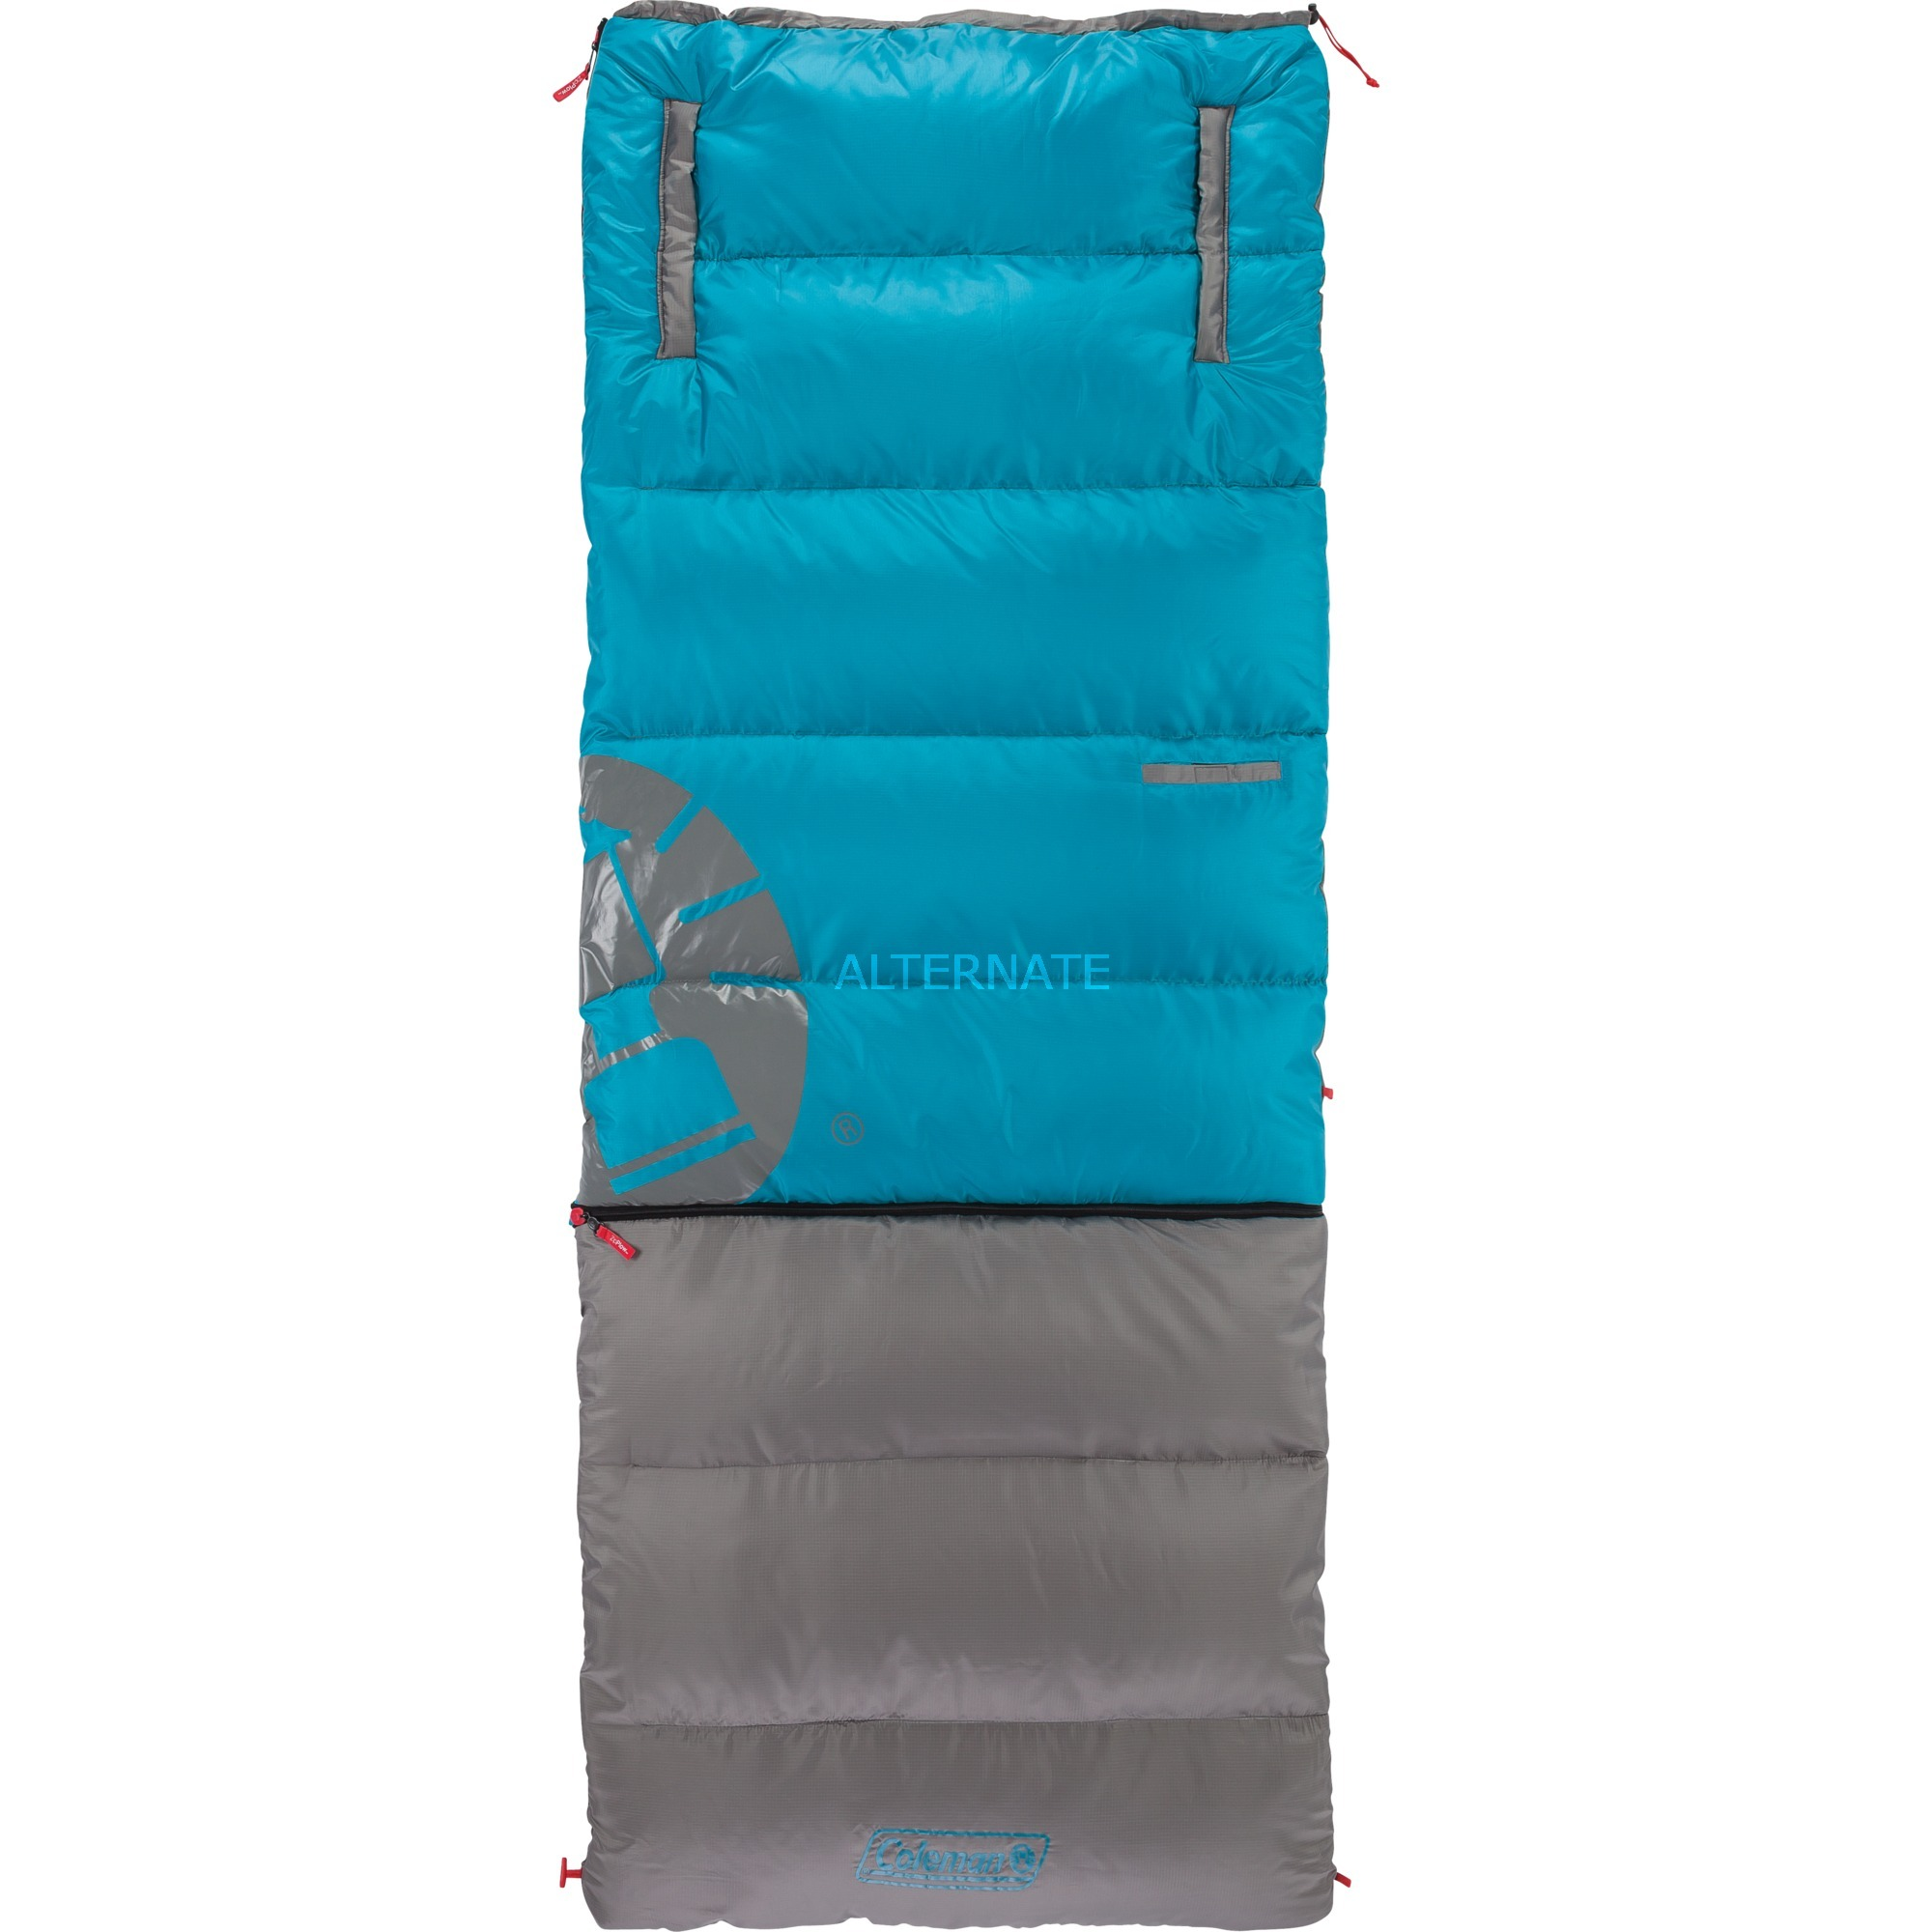 sovepose-walkaround-mobile-voksen-rectangular-sleeping-bag-polyester-blaa-graa